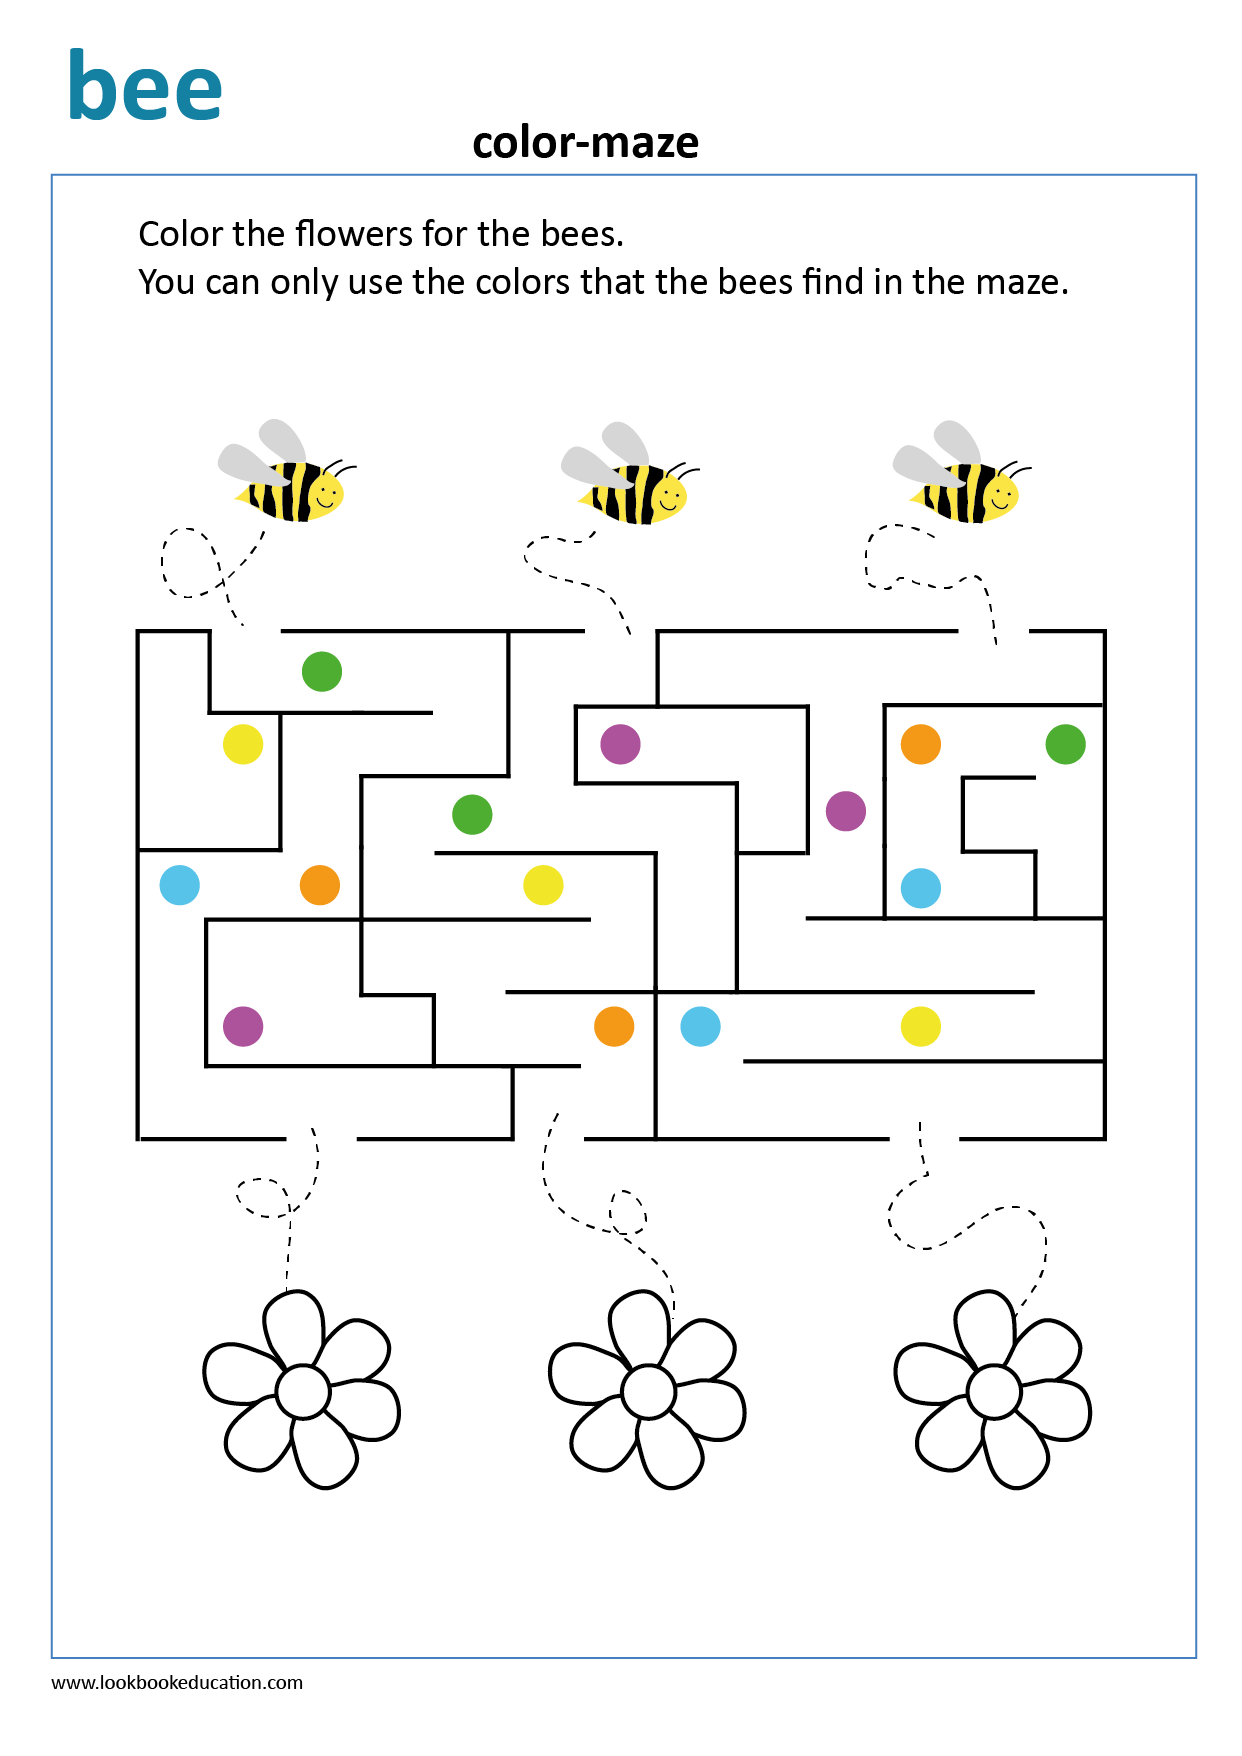 Worksheet Color Maze Bee